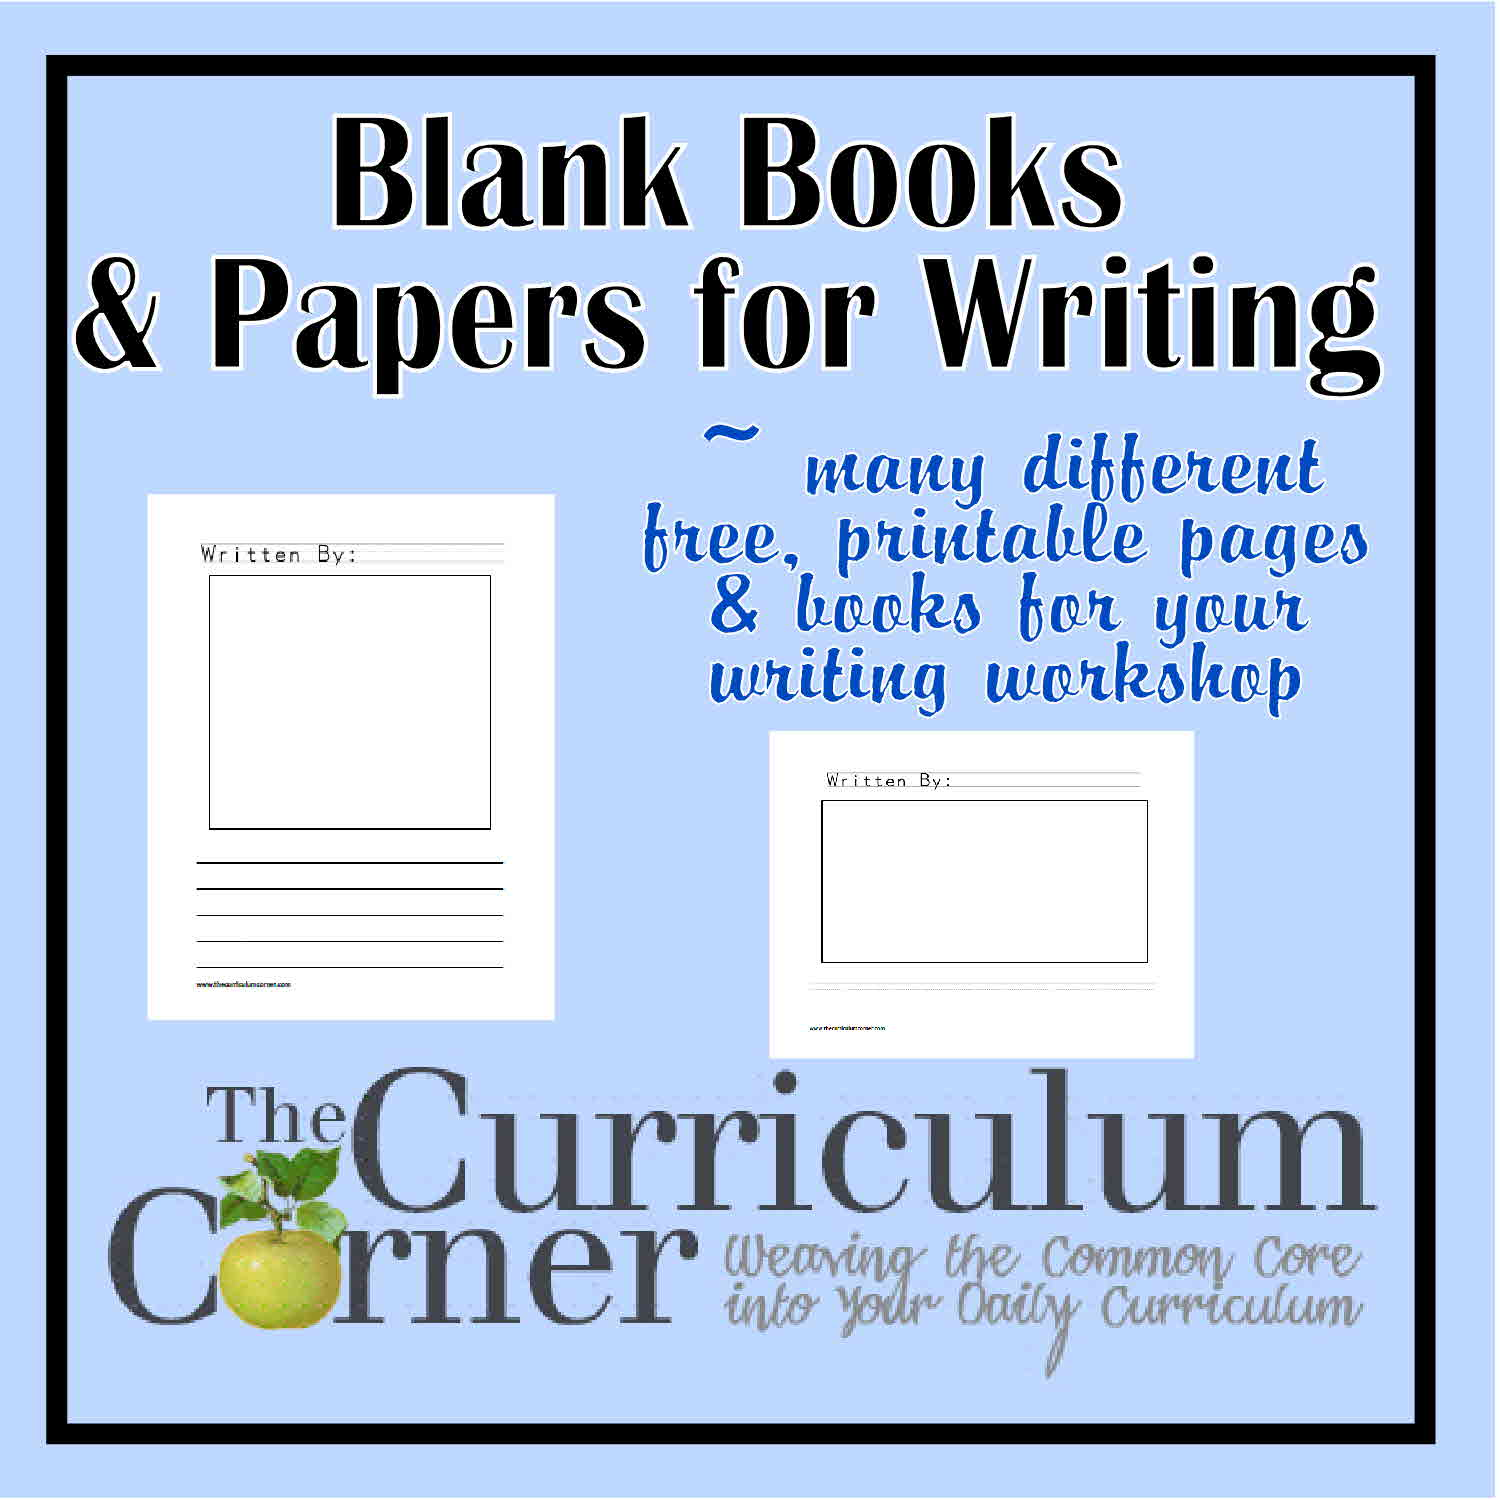 Free Printable Blank Books for Writing Workshop